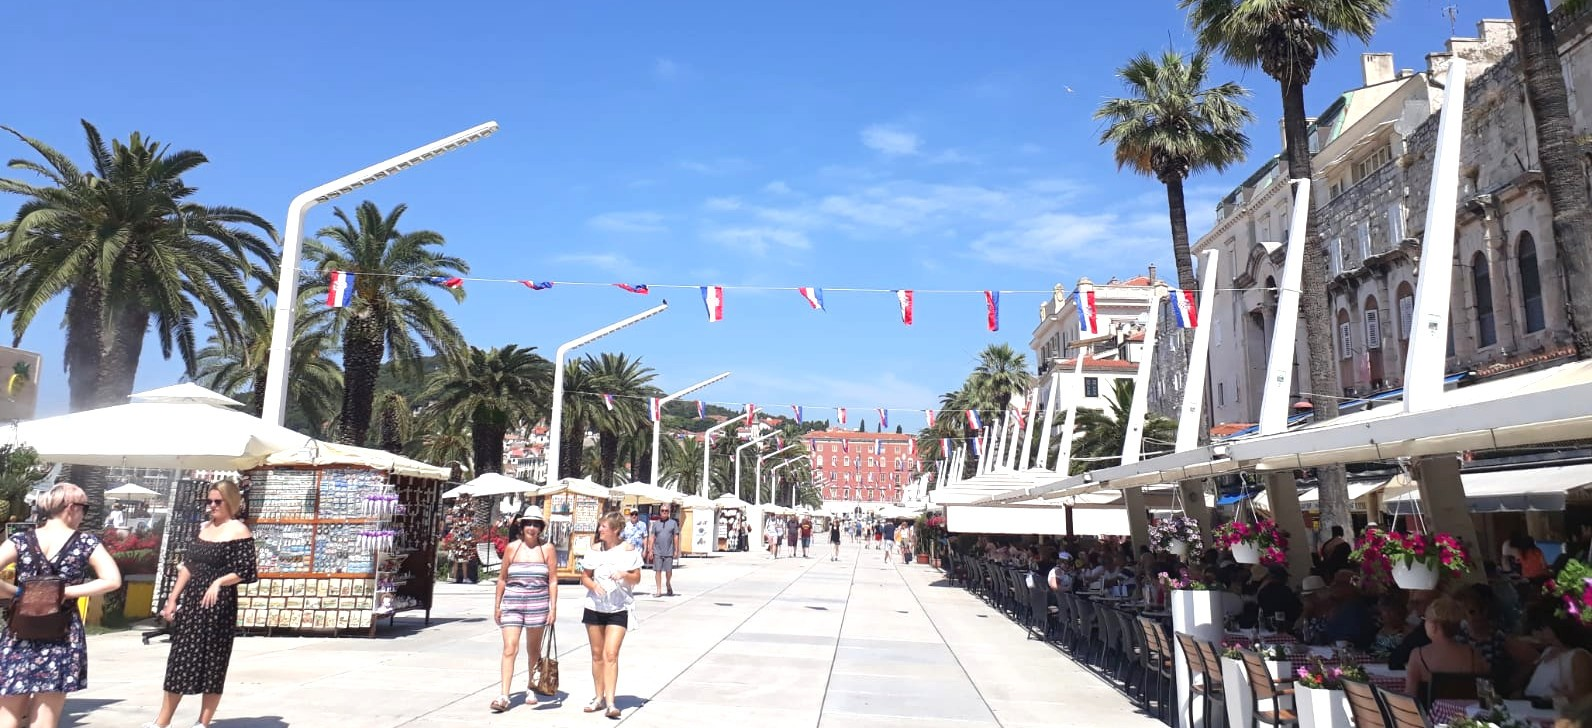 Riva is the main place in Split for relaxation, walking, drinking coffee.